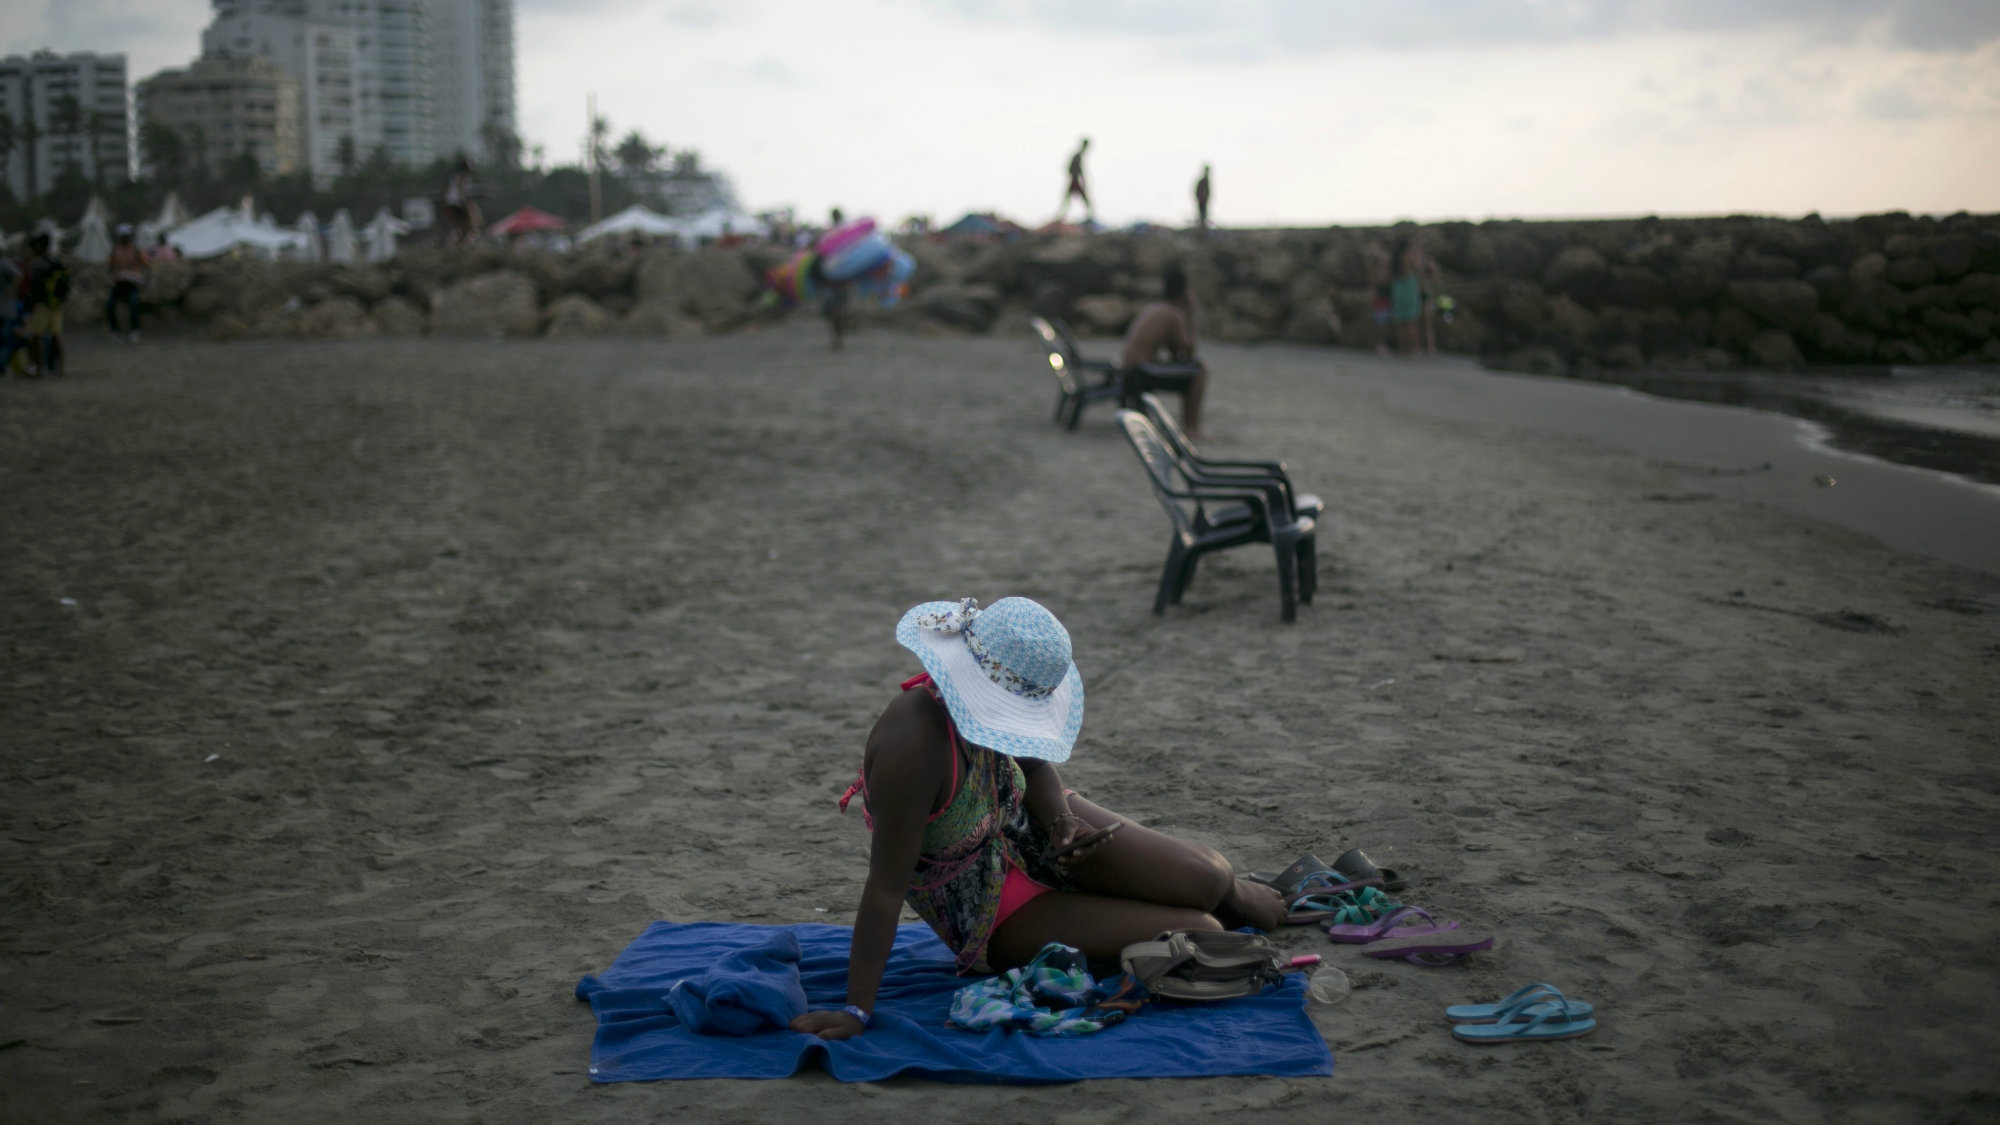 A woman uses her cell phone as she sits on the beach in Cartagena, Colombia, Tuesday, Sept. 27, 2016, the day after the government signed a peace agreement with the Revolutionary Armed Forces of Colombia, FARC, to end over 50 years of conflict.